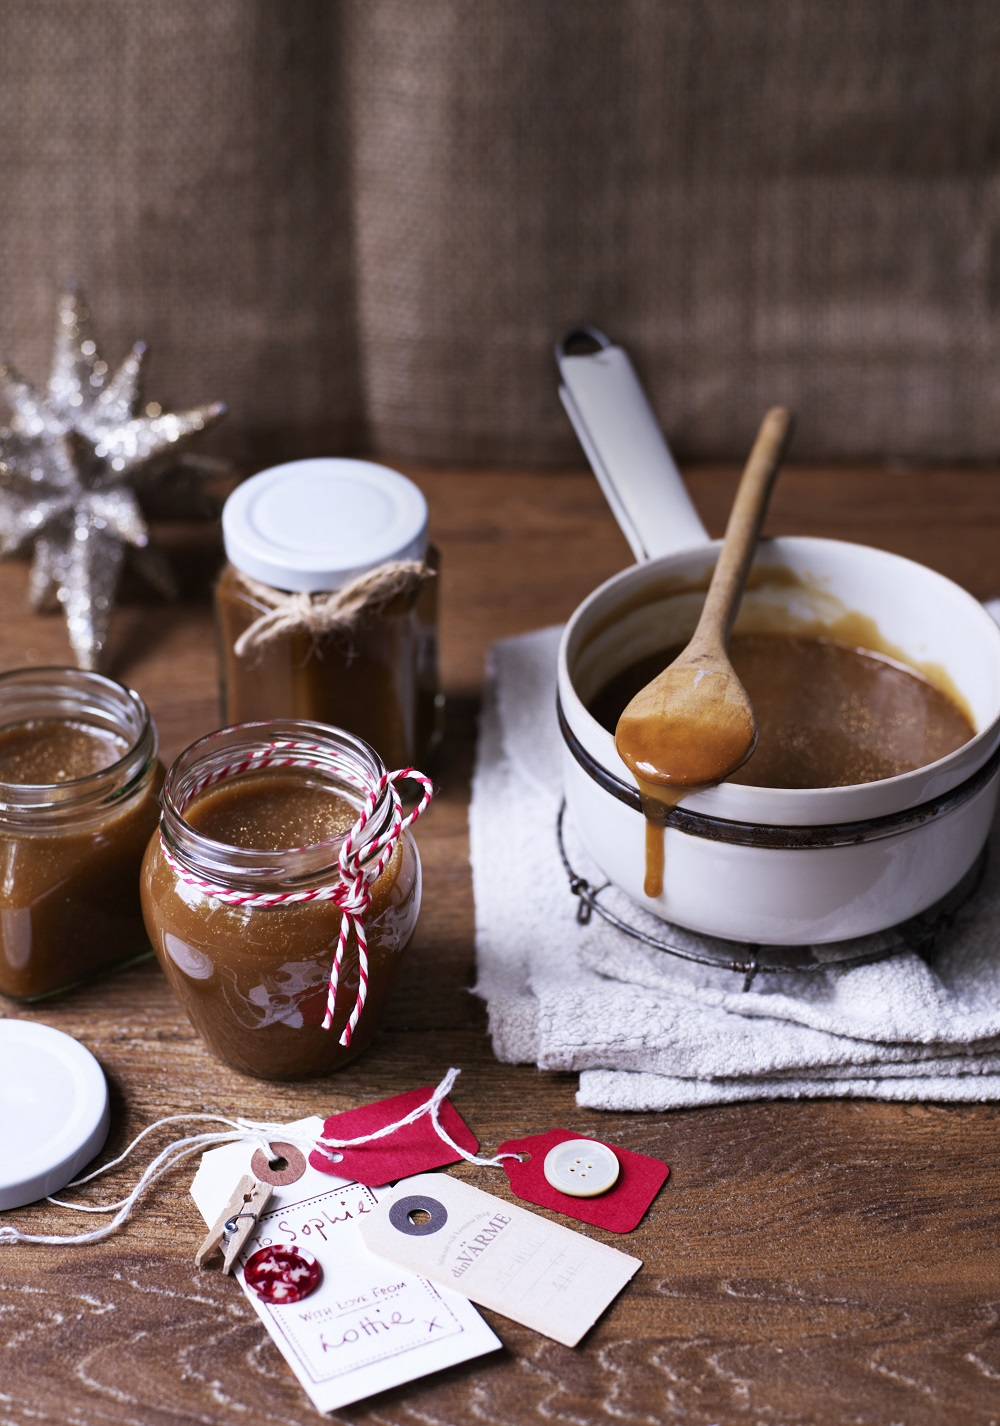 How To Make Glittered Caramel Sauce